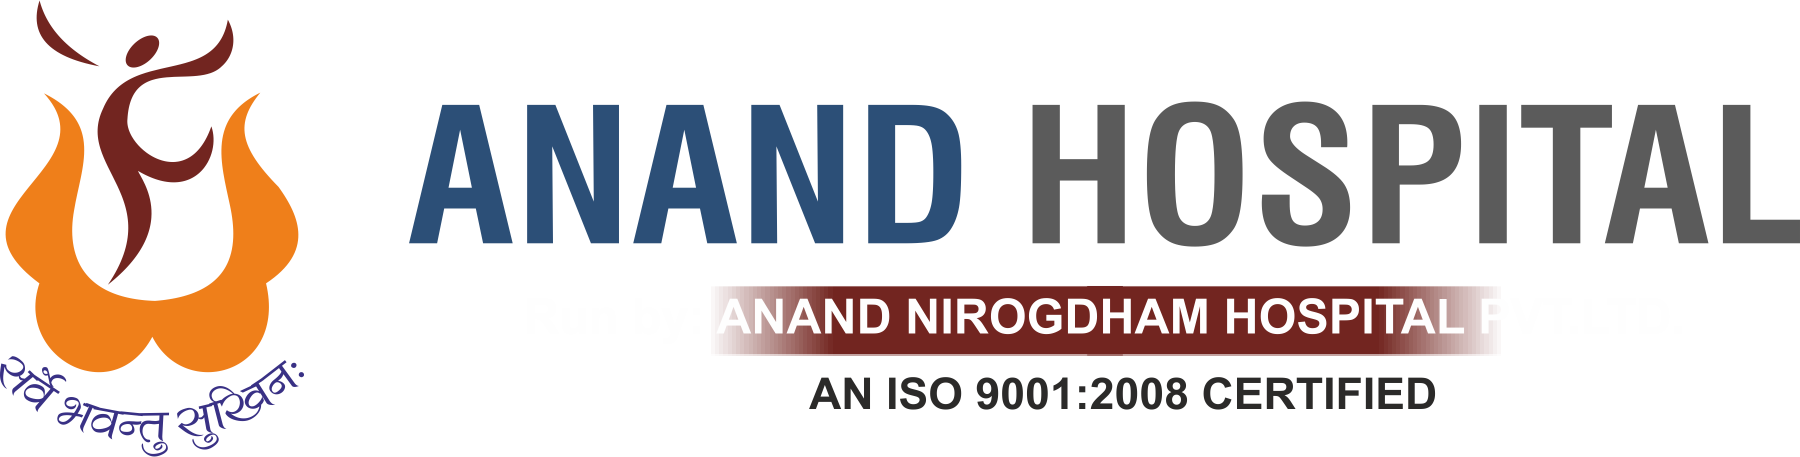 anand-hospital-logo-meerut